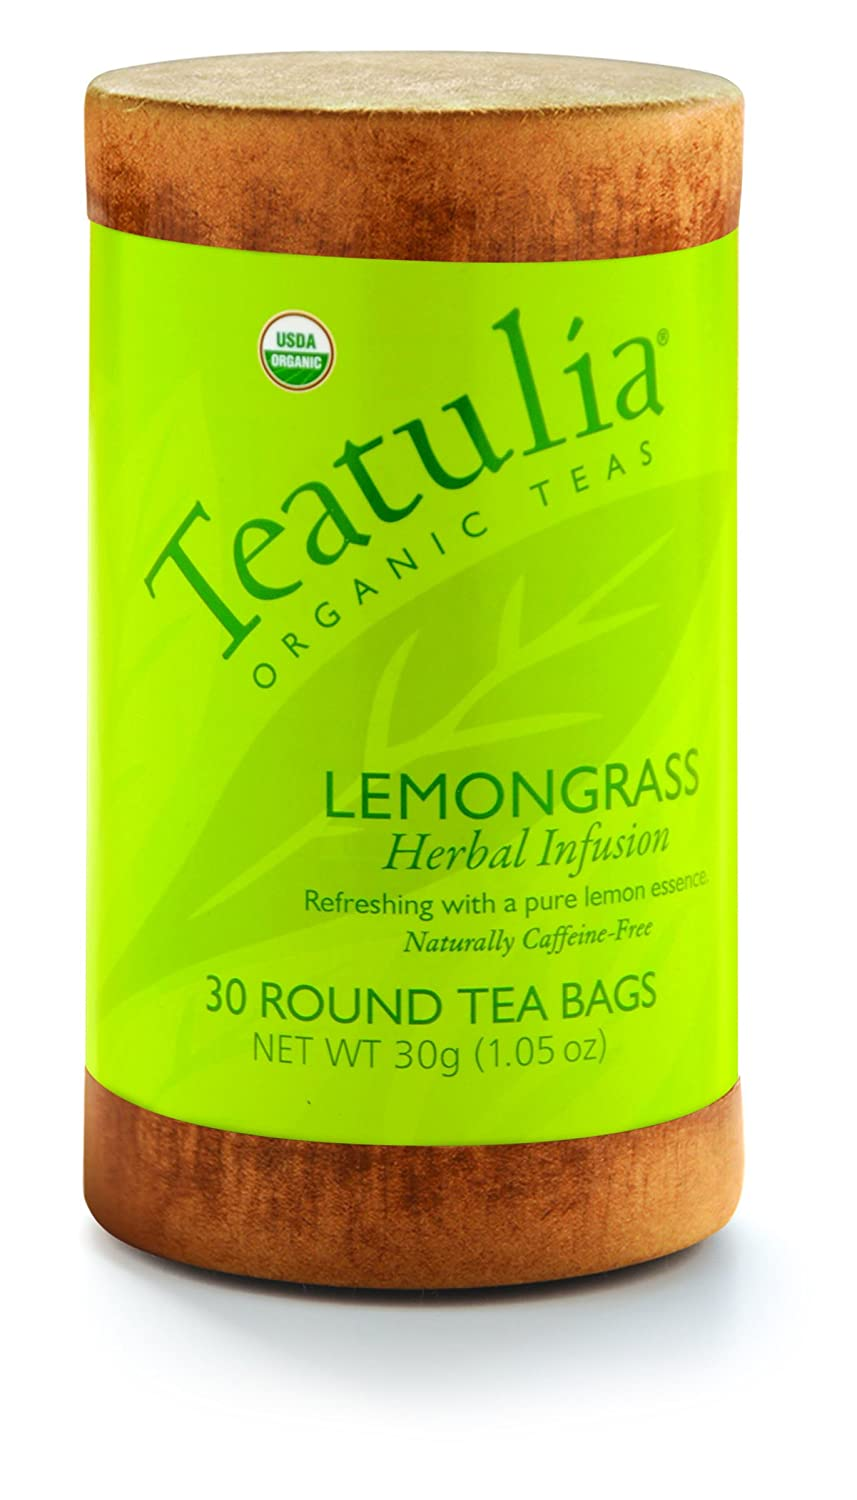 Organic Lemongrass 6 units x 30 Unwrapped Standard Tea Bags